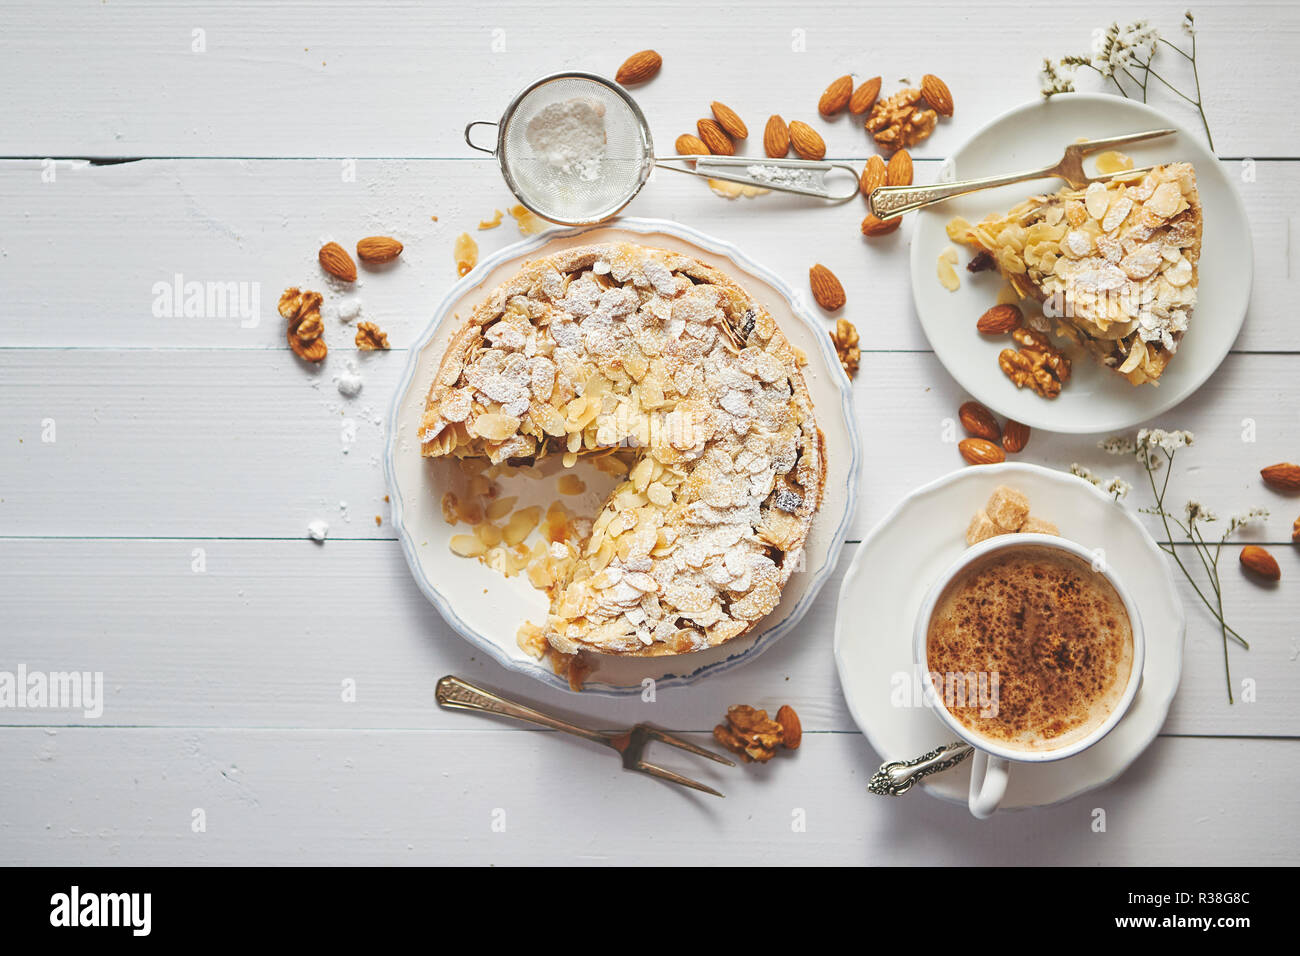 Whole delicious apple cake with almonds served on wooden table - Stock Image